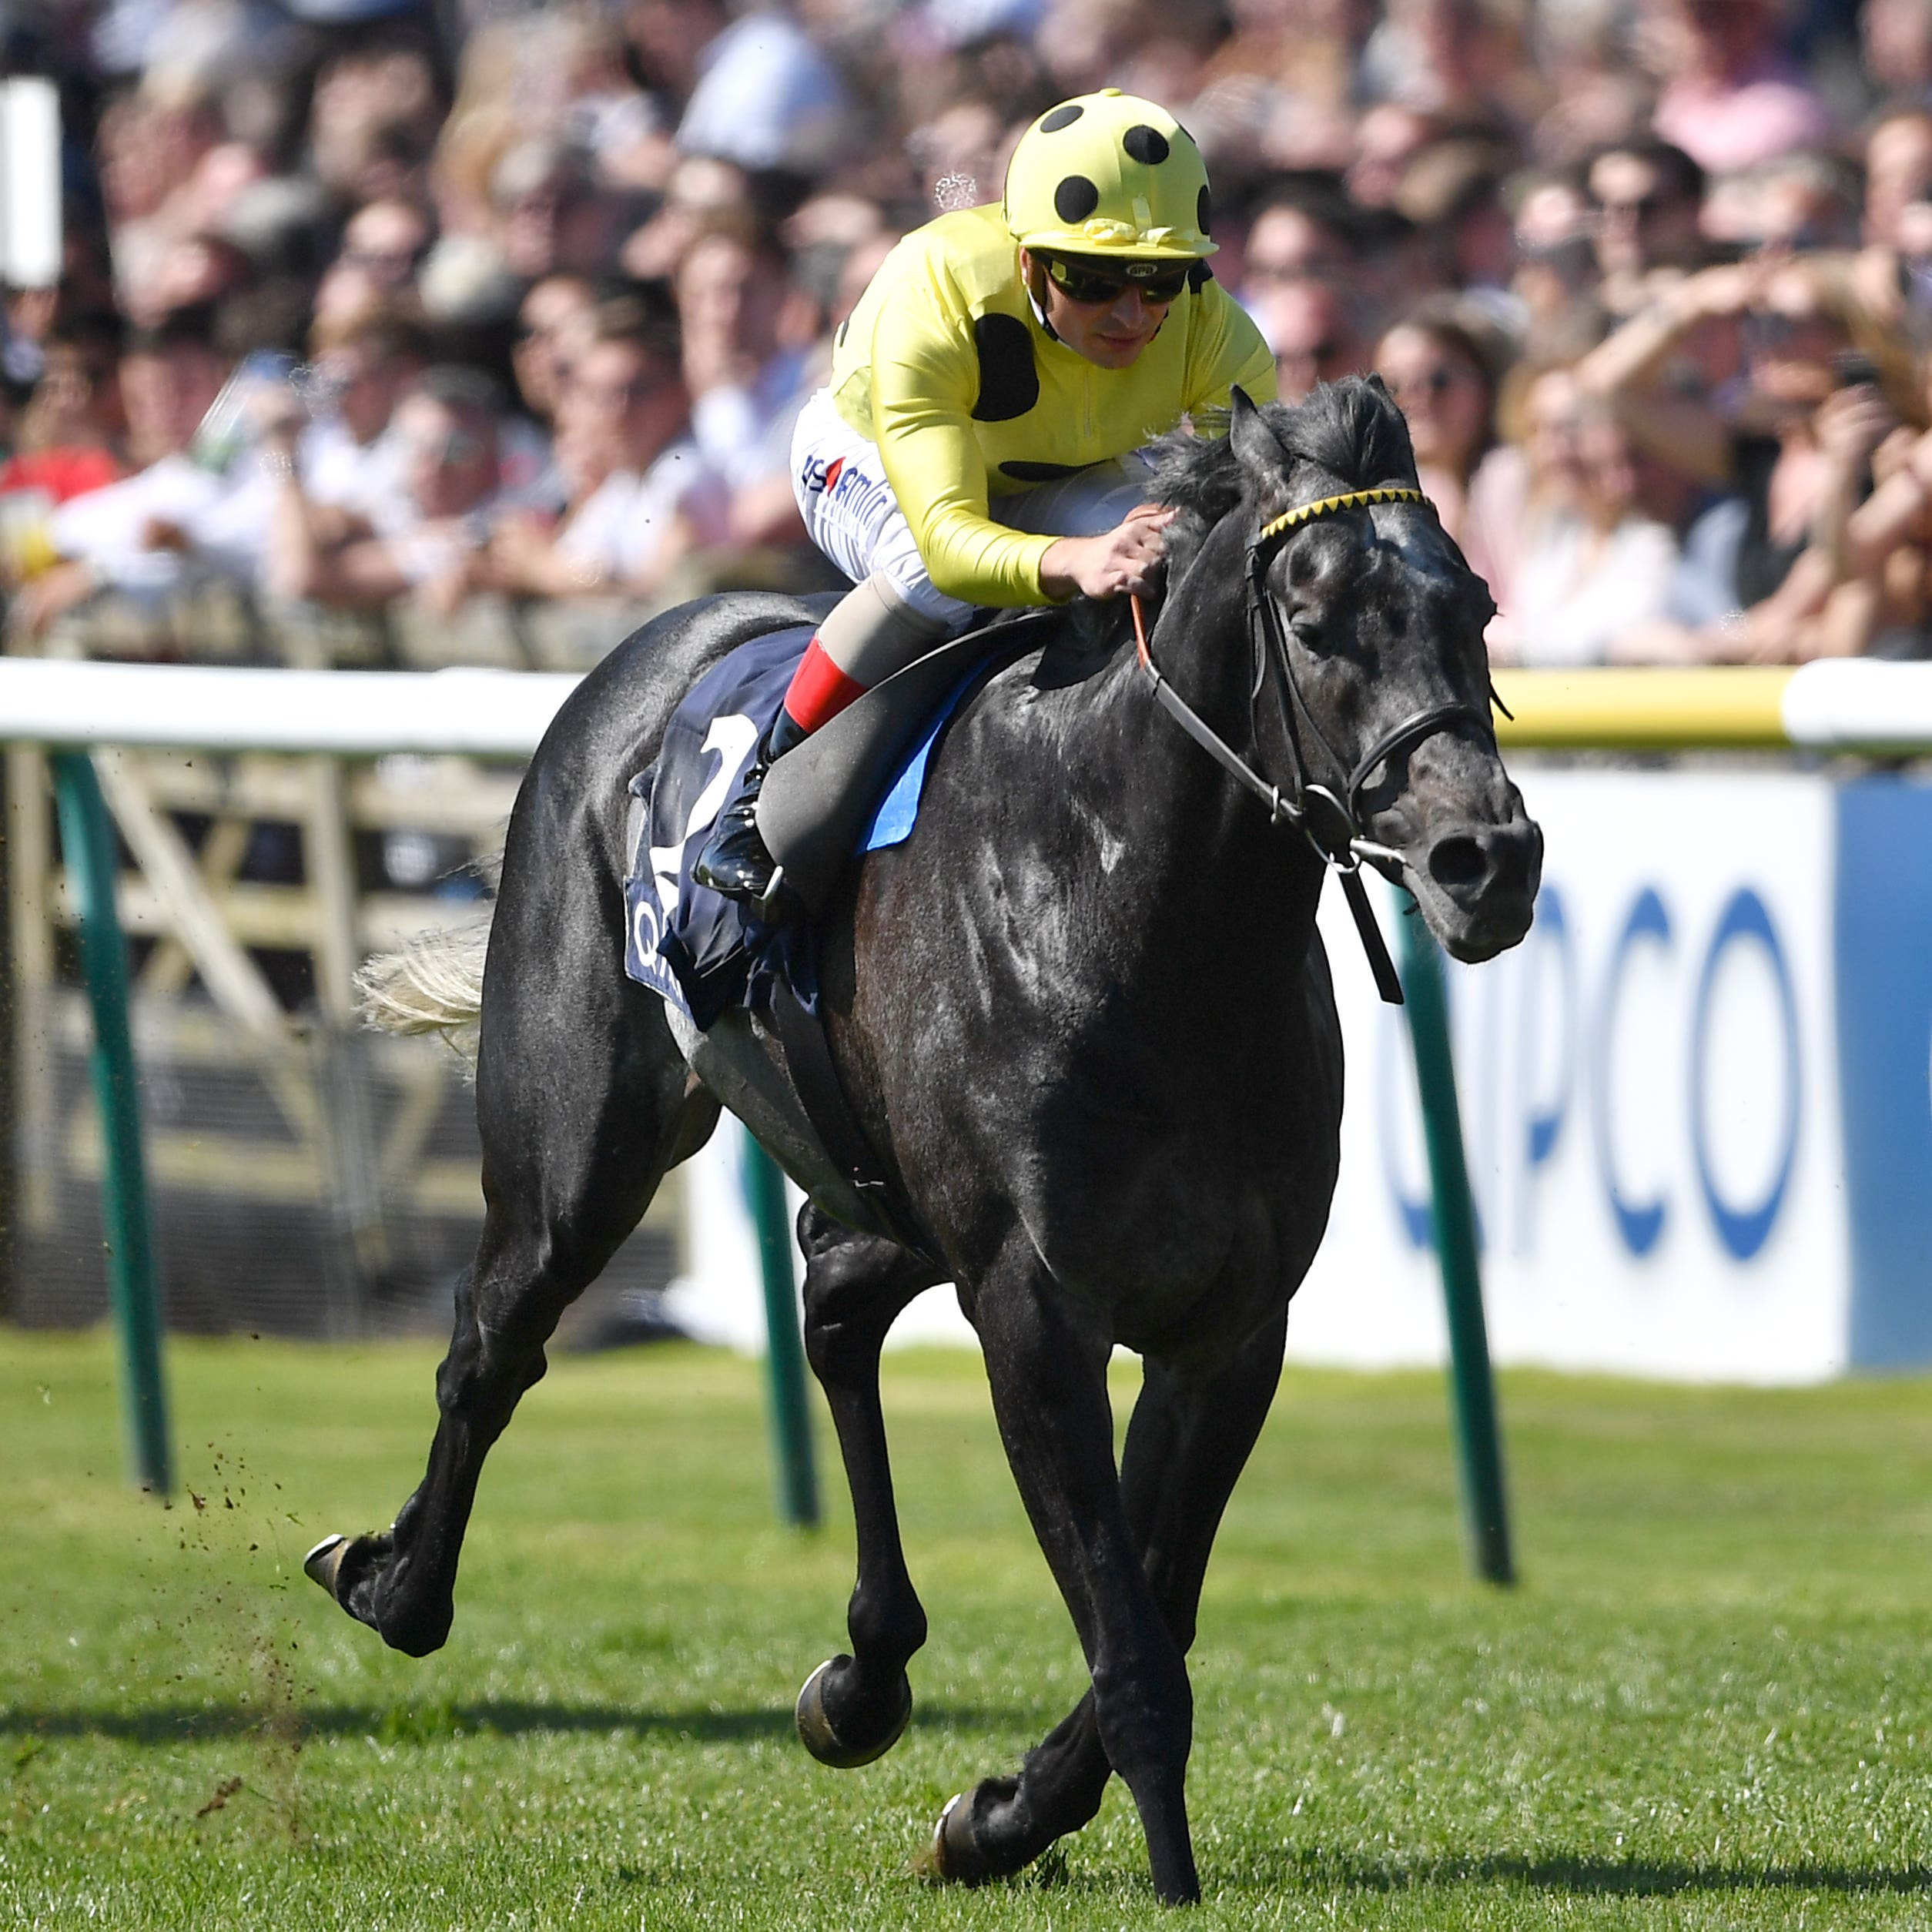 Defoe (right) wins the Jockey Club Stakes at Newmarket